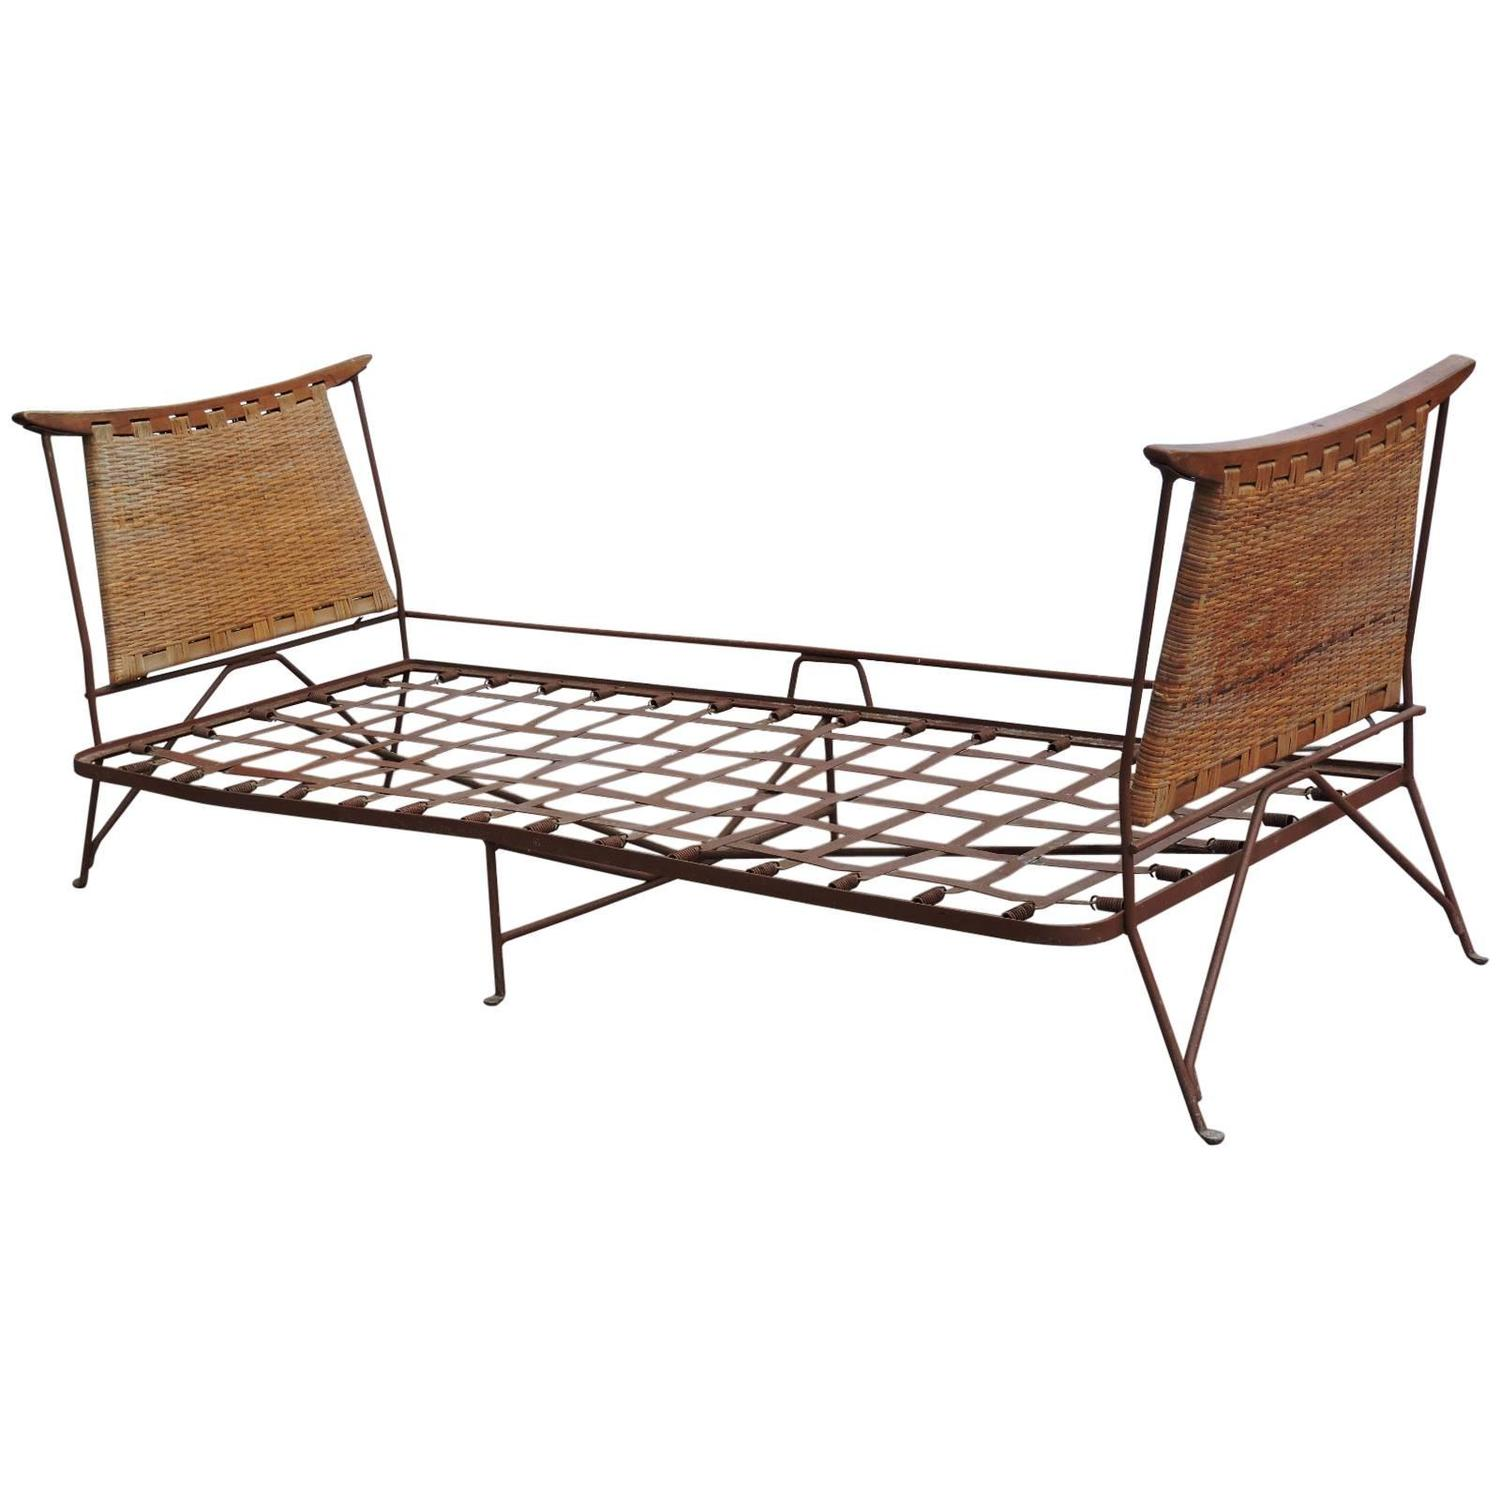 Rare Modernist Iron And Cane Daybed Lounge At 1stdibs